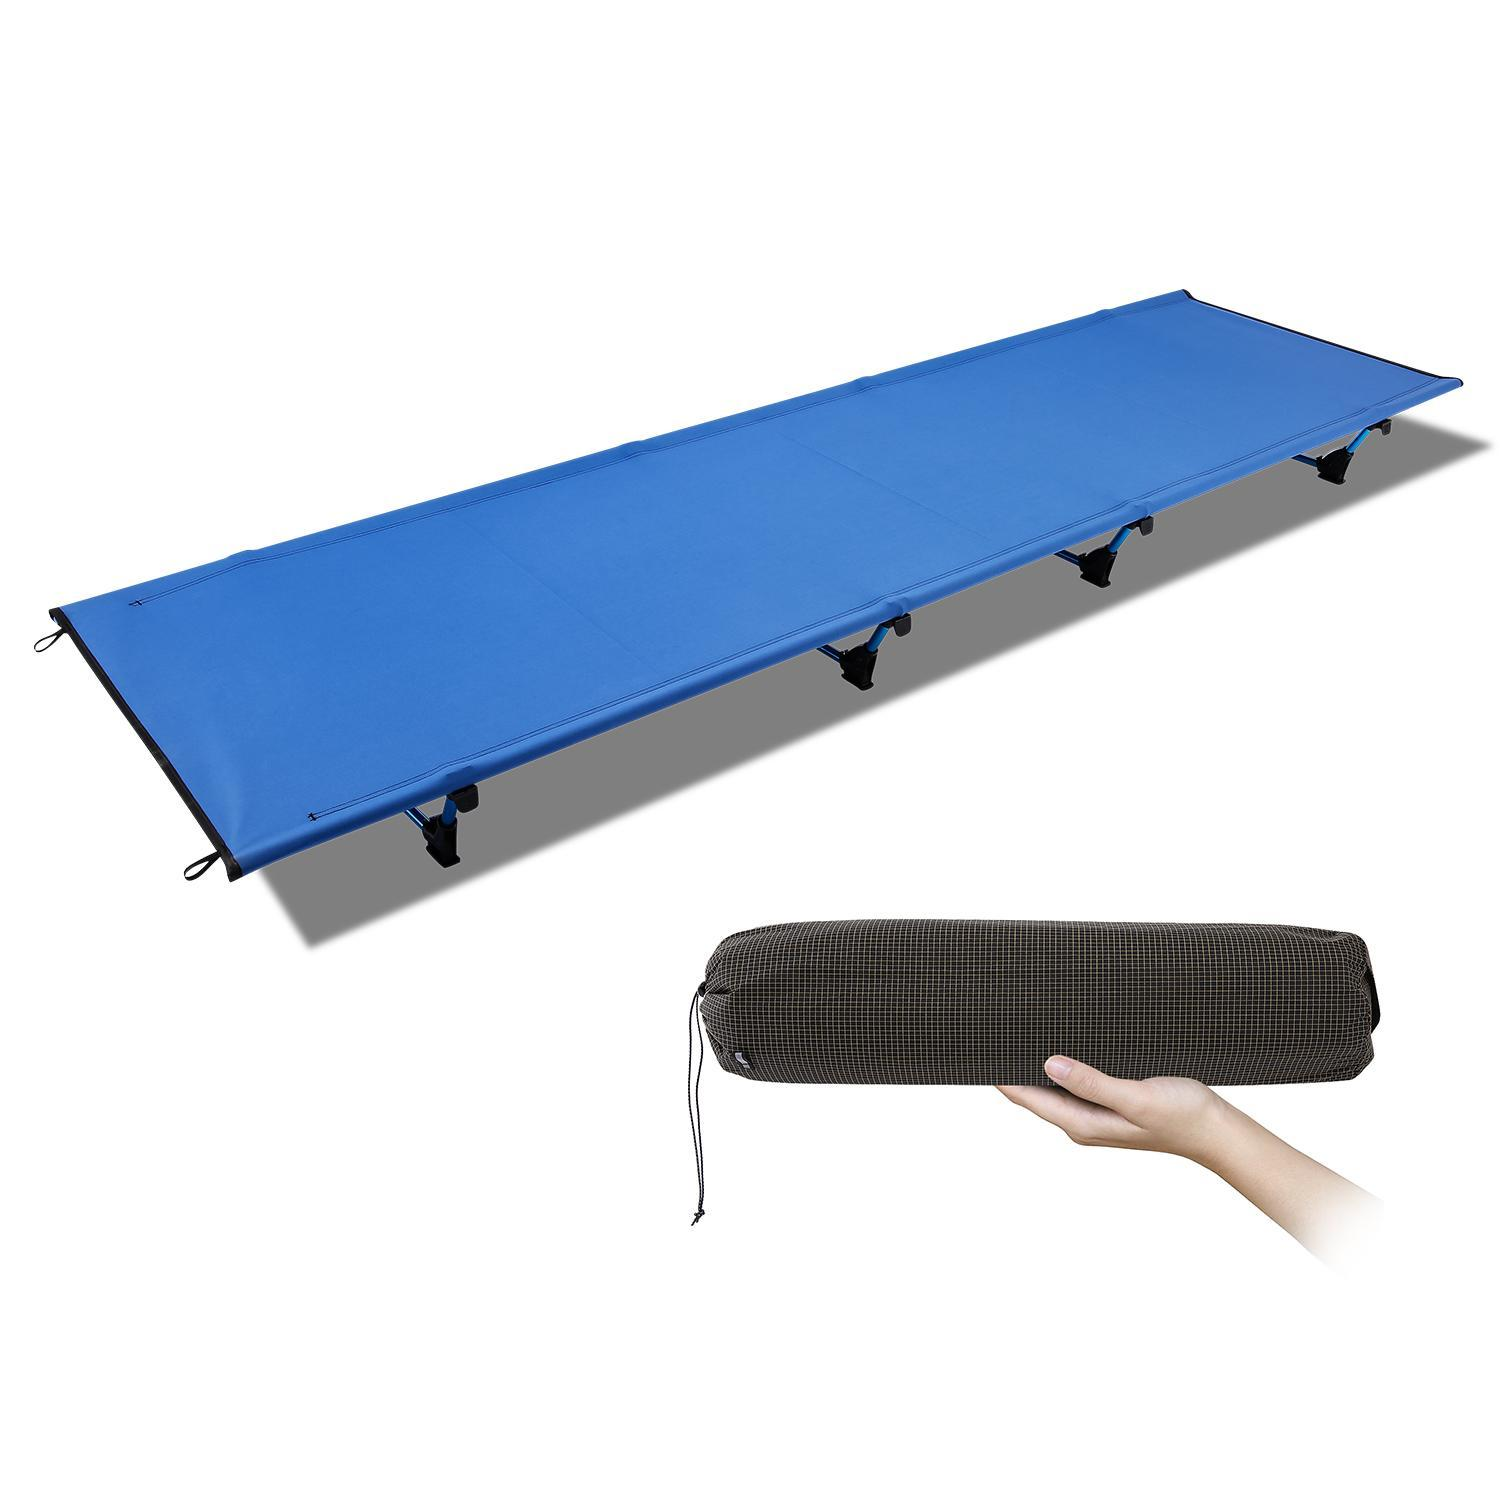 Waterproof Folding Camping Cot Hunting Camping Breathable Bed Ultralight KRGL by